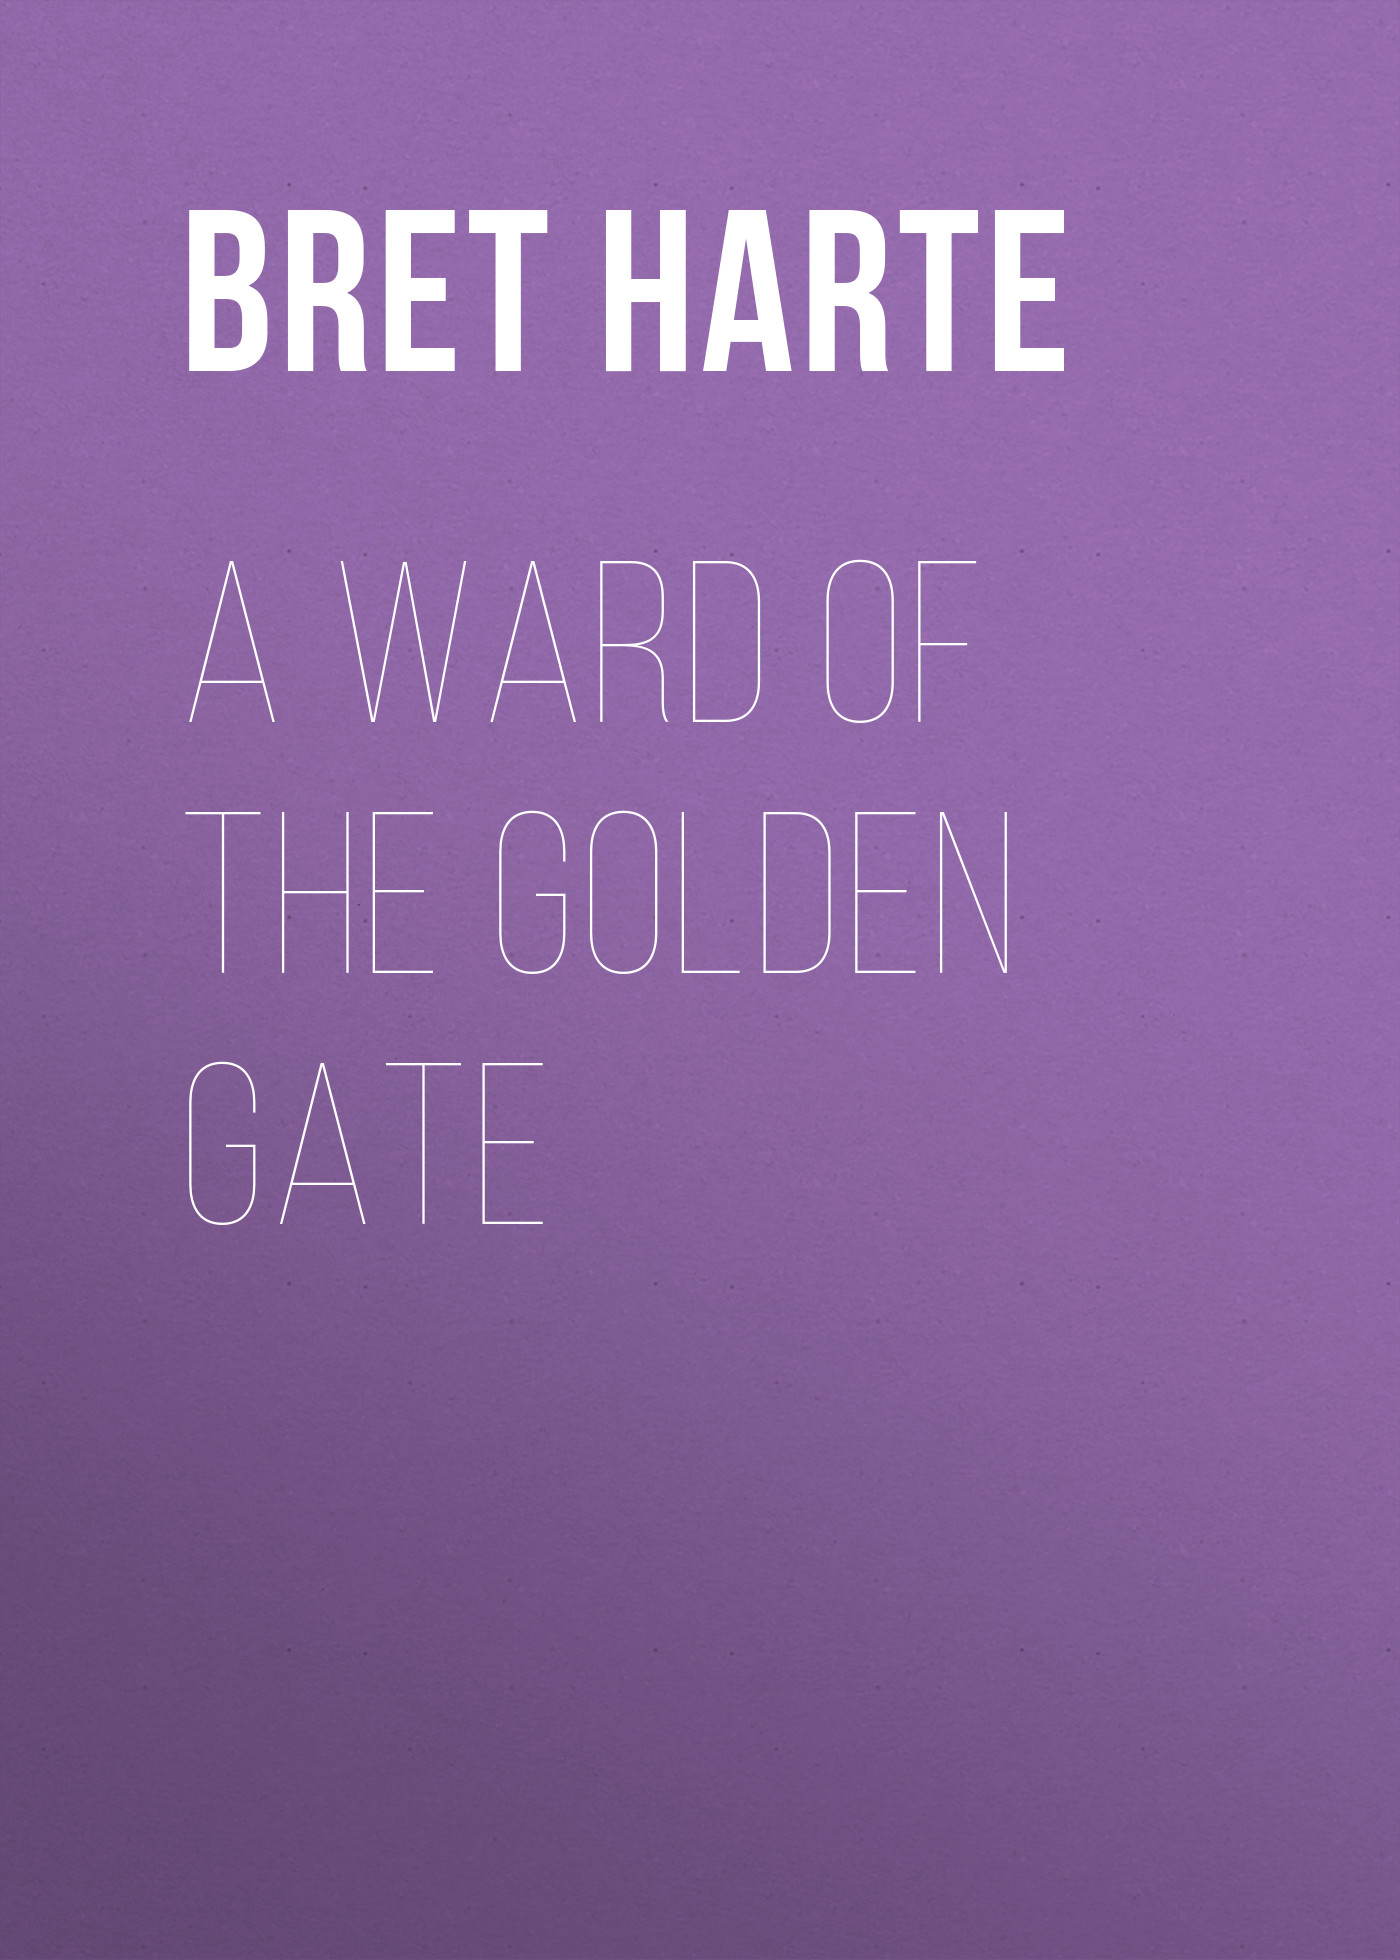 Bret Harte A Ward of the Golden Gate